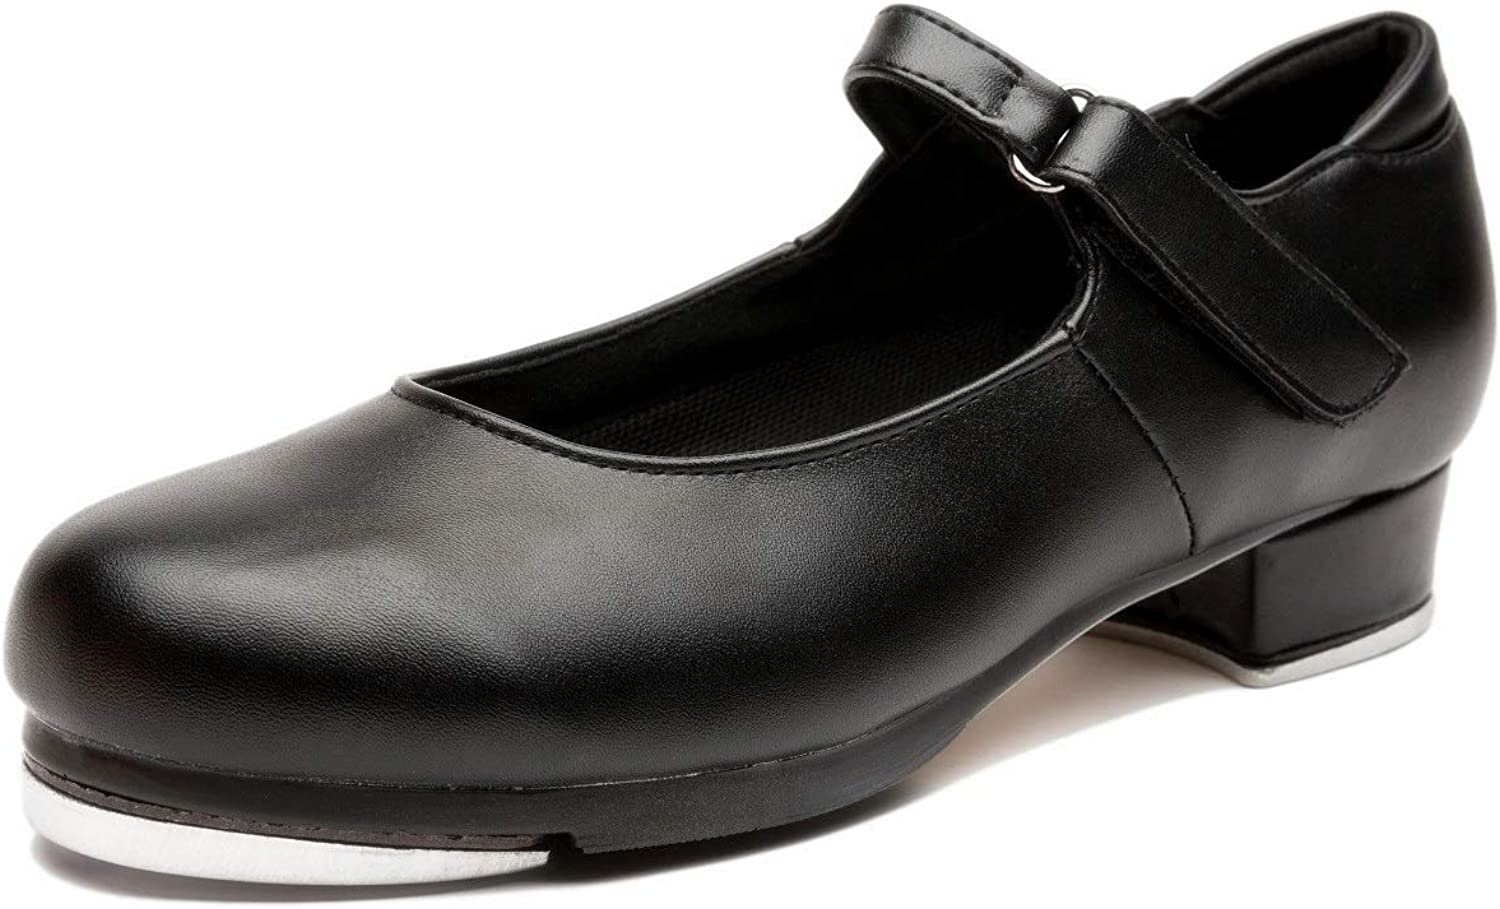 NLeahershoe Slide Buckle Leather Tap shoes Dancing shoes for Women,Ladies,Girls, Black